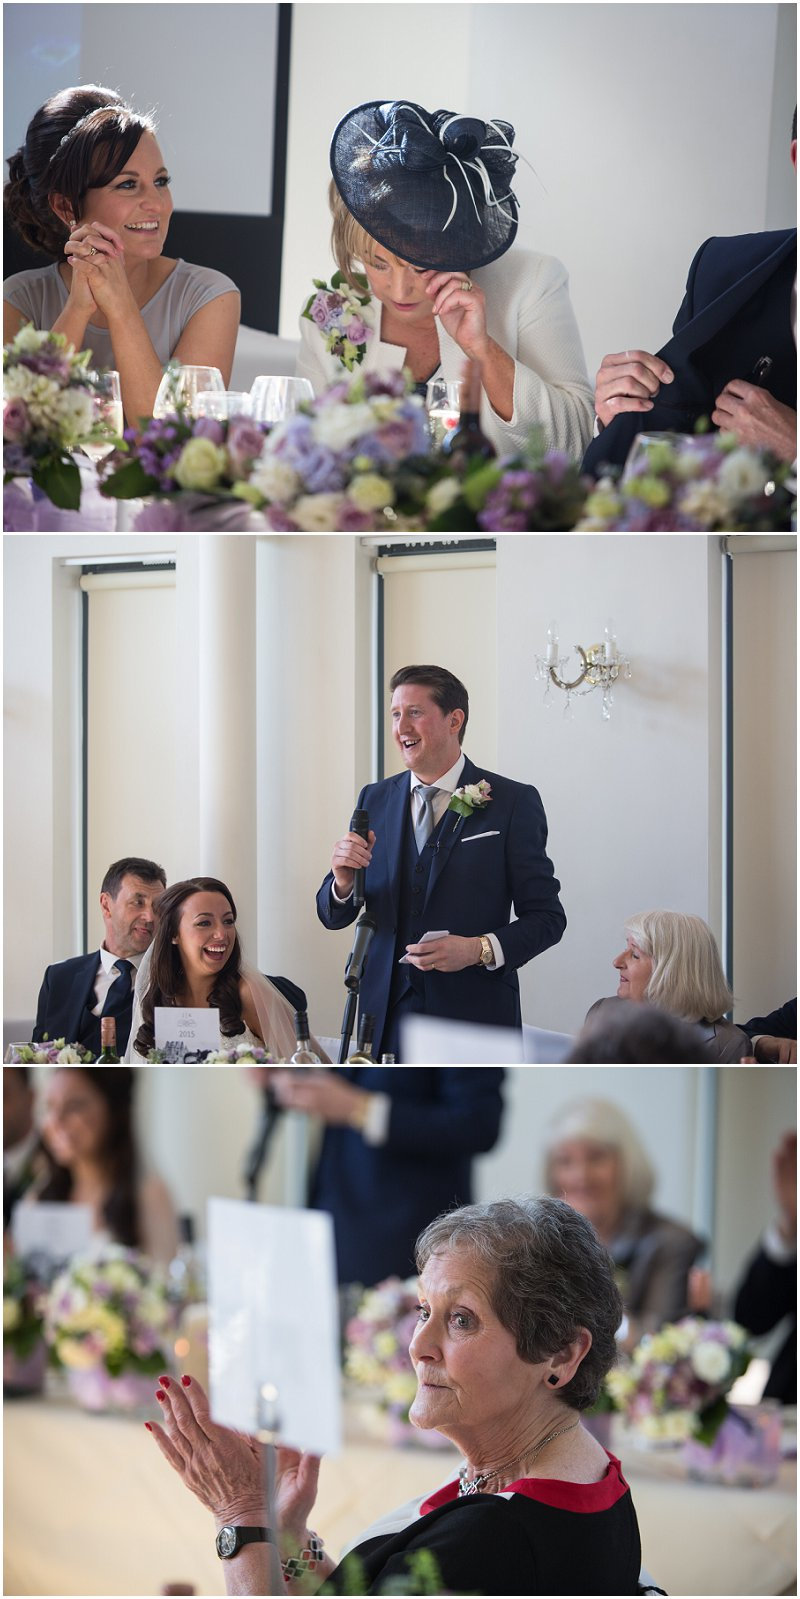 Emotional speeches at West Tower wedding